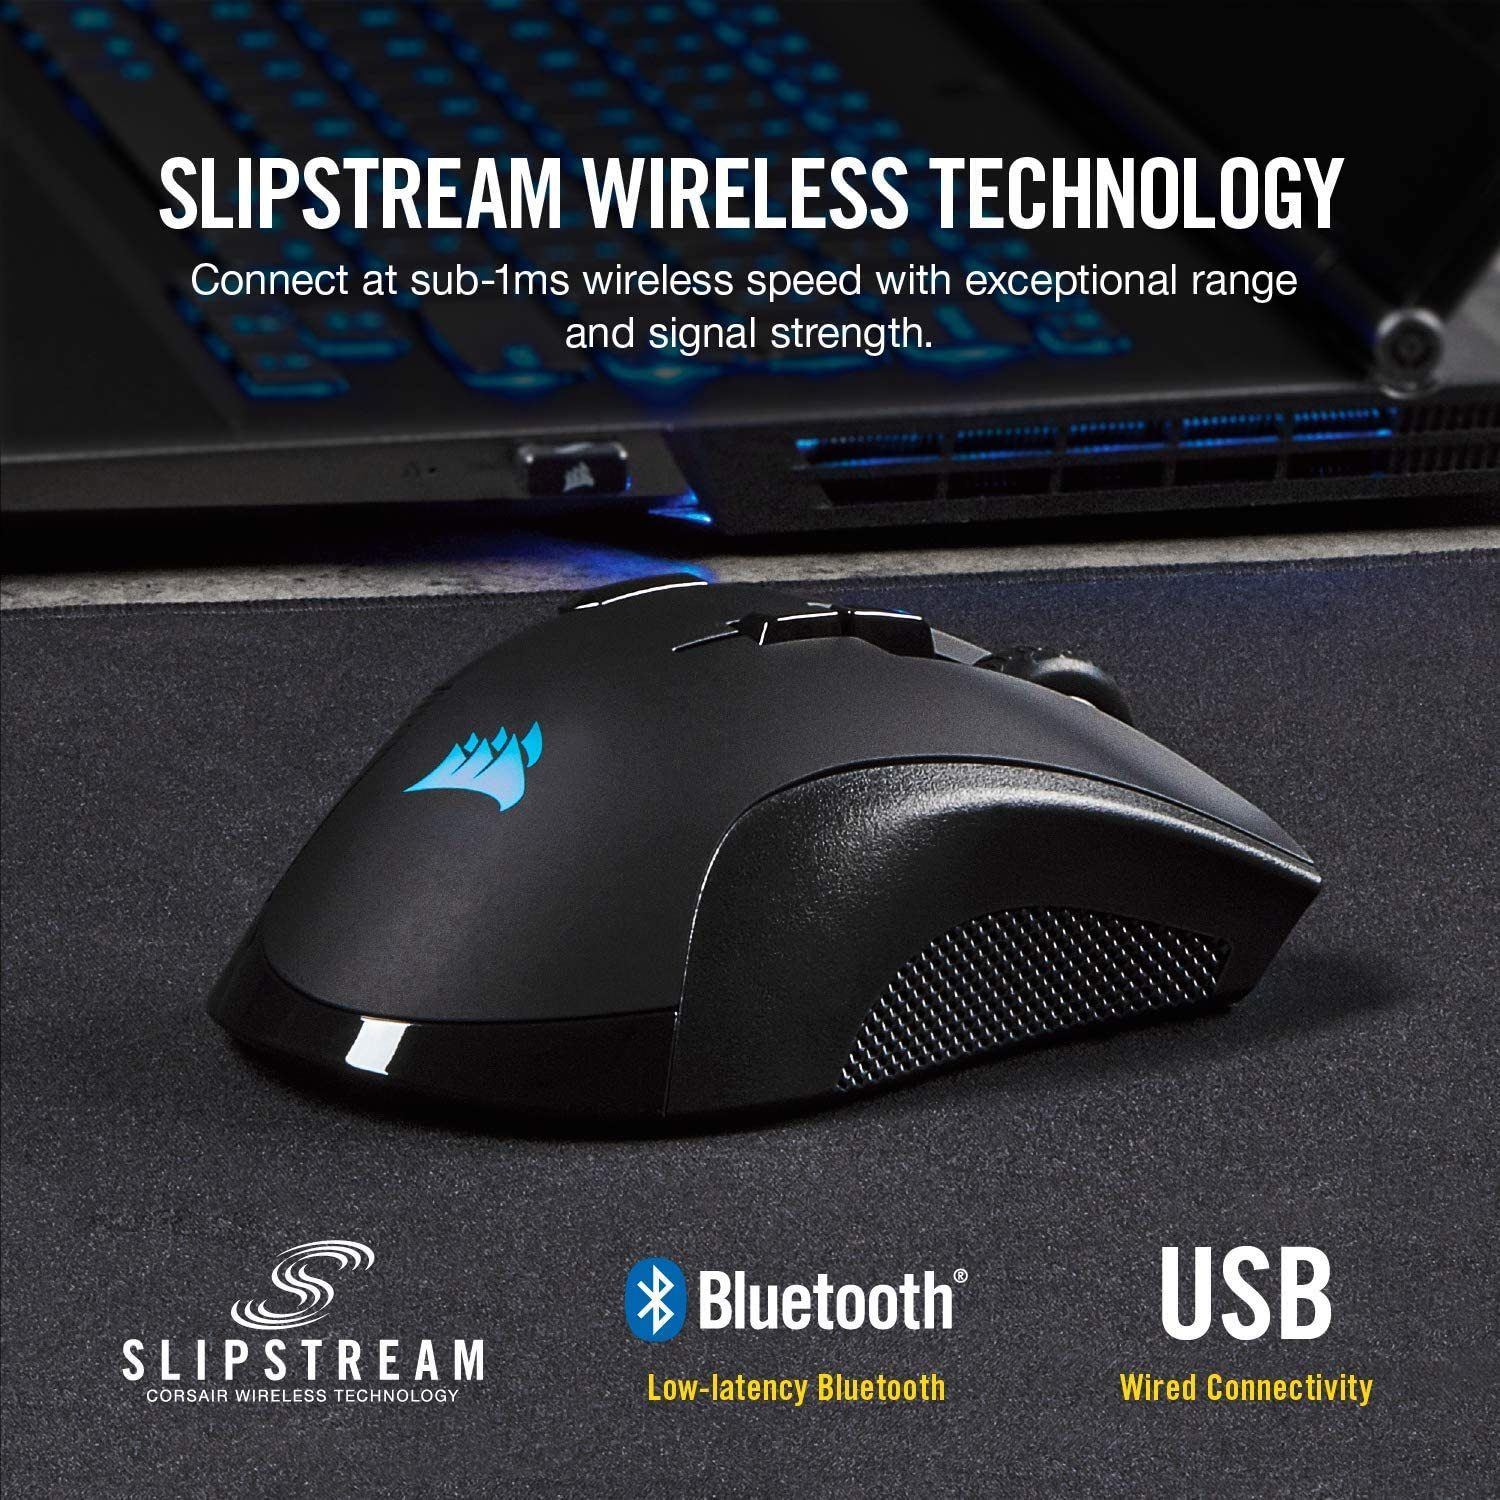 IRONCLAW Wireless RGB - FPS and MOBA Gaming Mouse - 18,000 DPI Optical Sensor - Sub-1 ms SLIPSTREAM Wireless